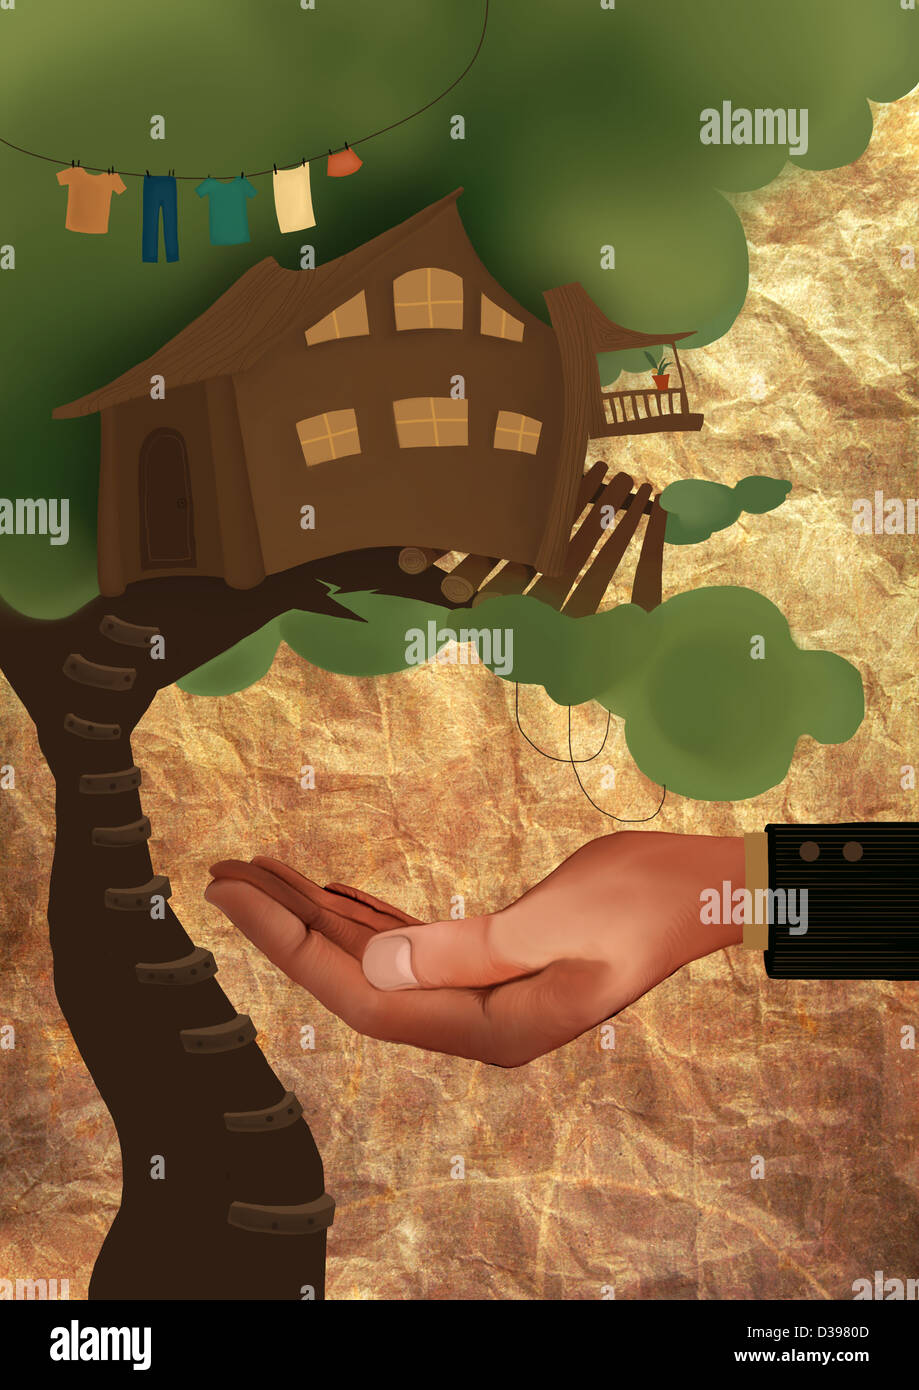 Human hand safeguarding treehouse from falling depicting home insurance - Stock Image